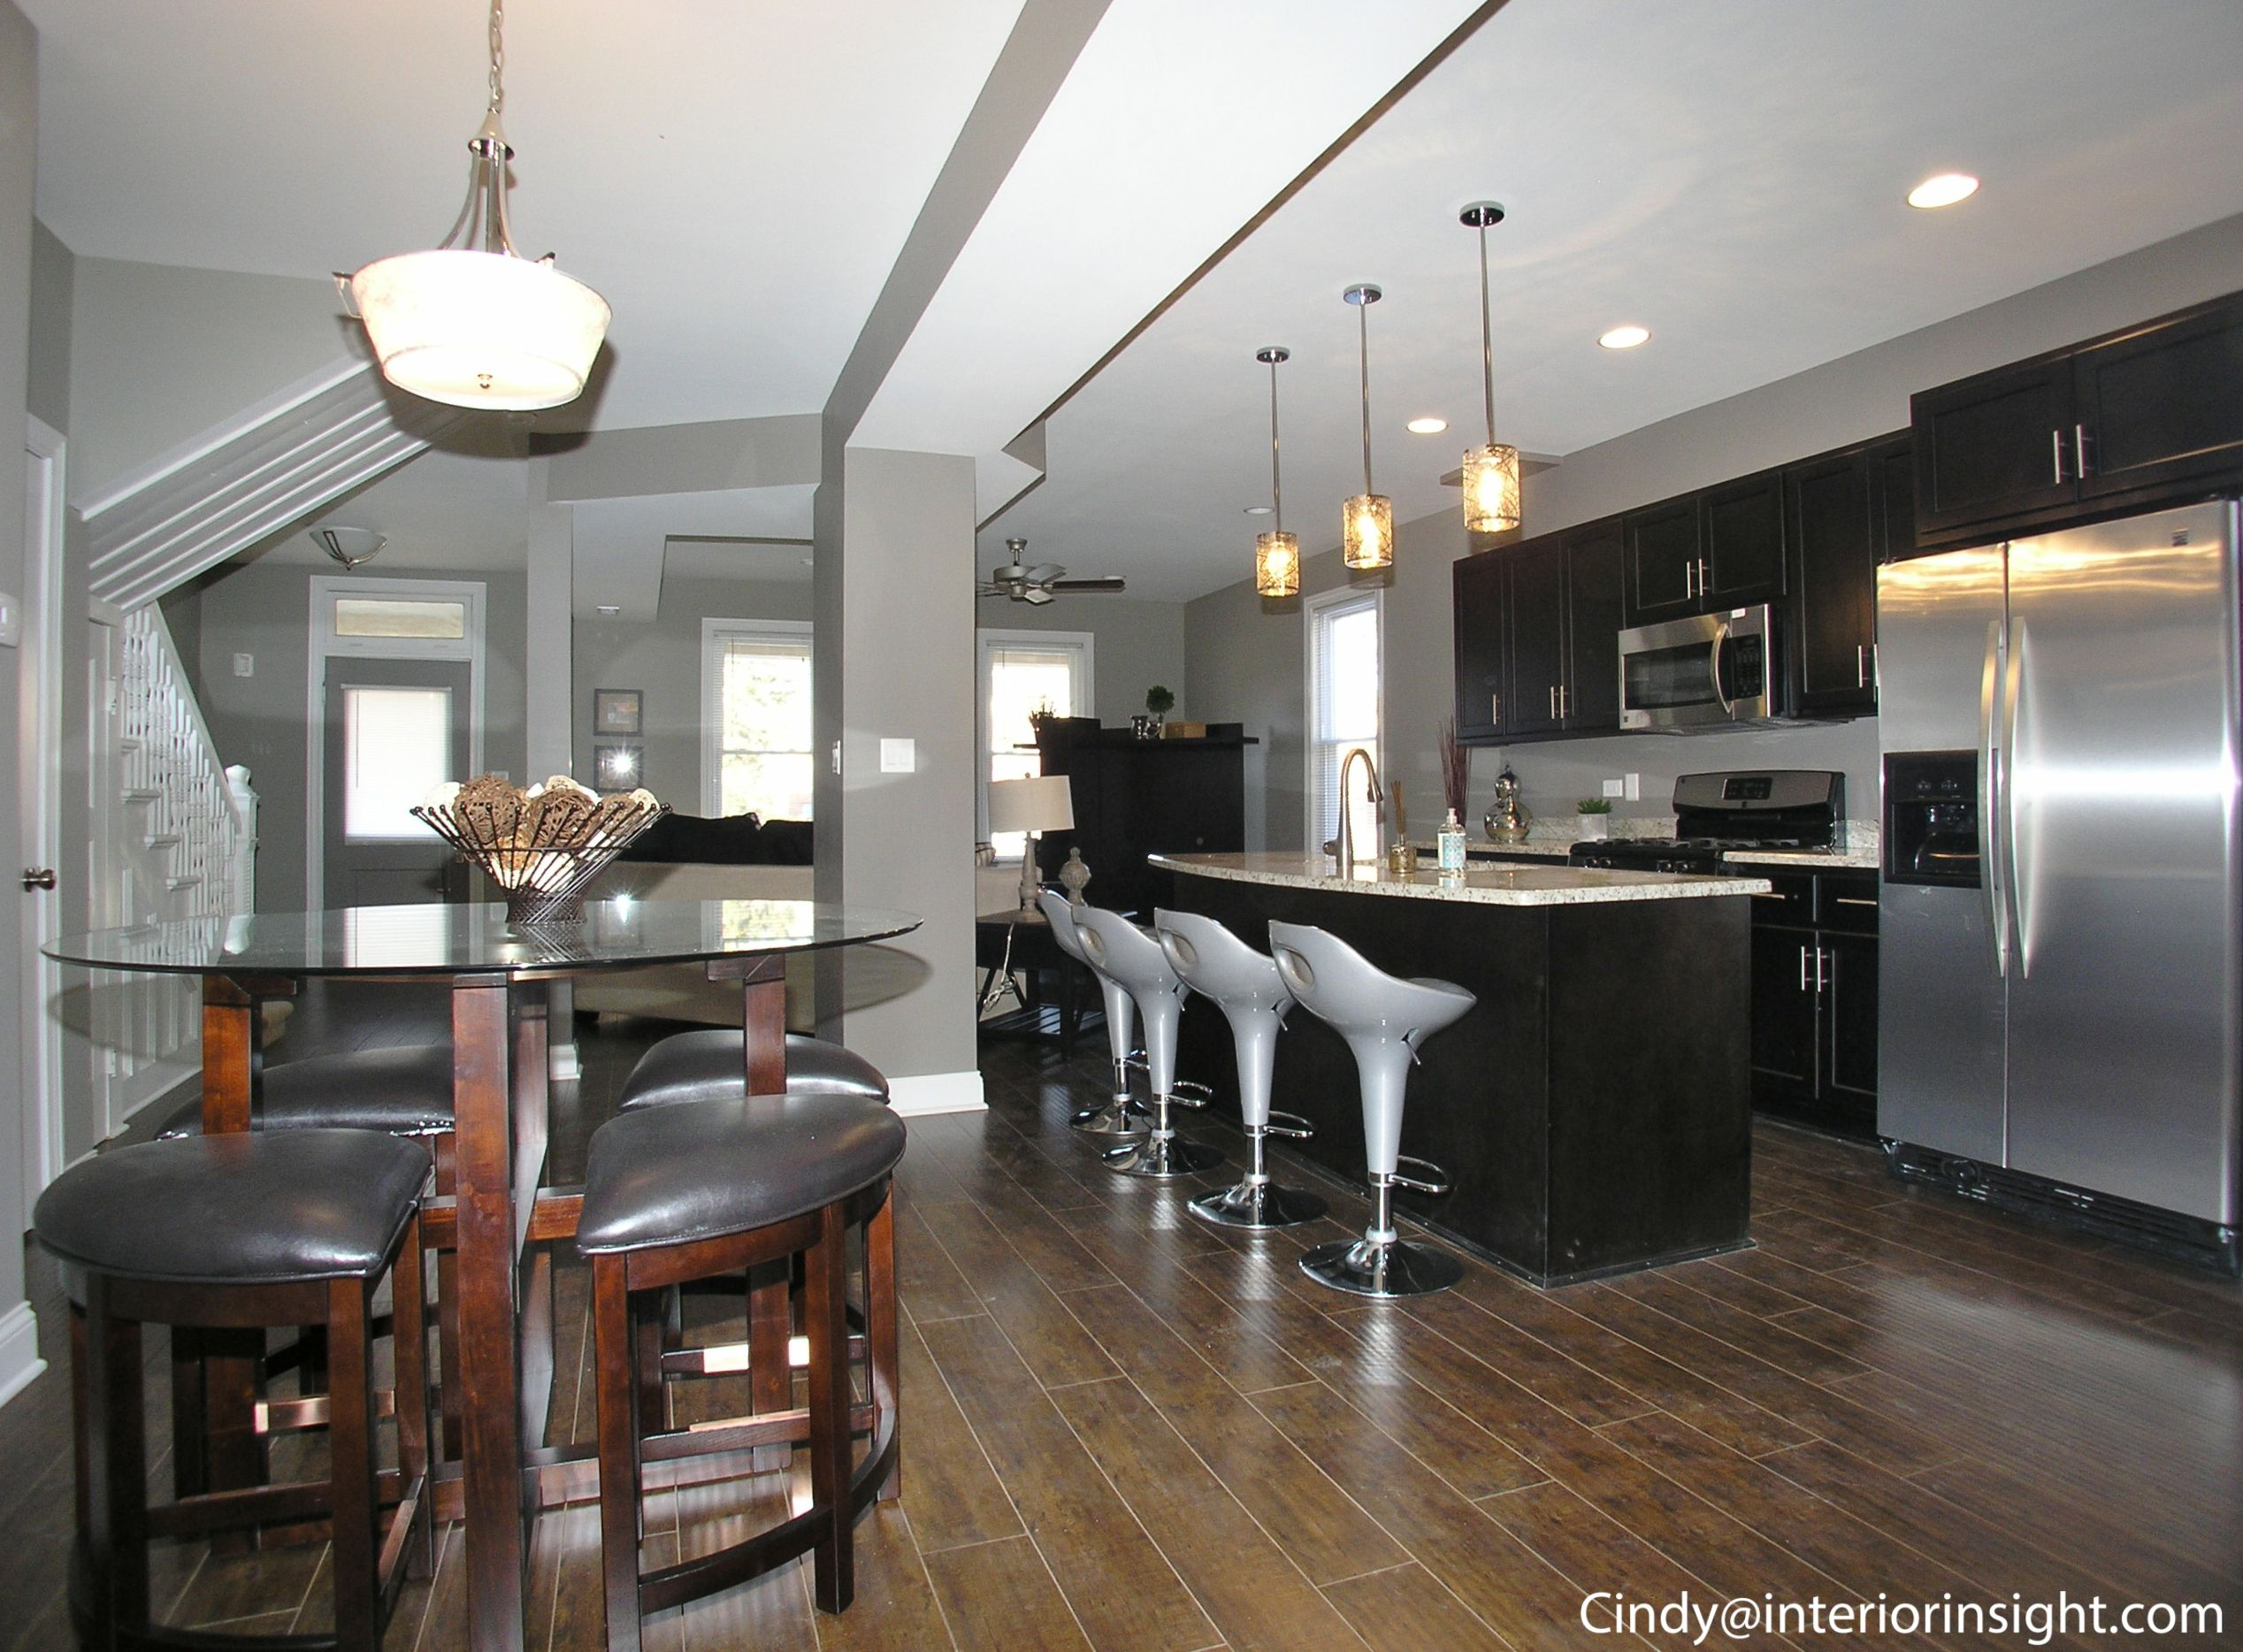 NEW Open Floor Plan In George Slowinskiu0027s Beverly/Chicago Bungalow Listing. Stainless  Steel Fridge